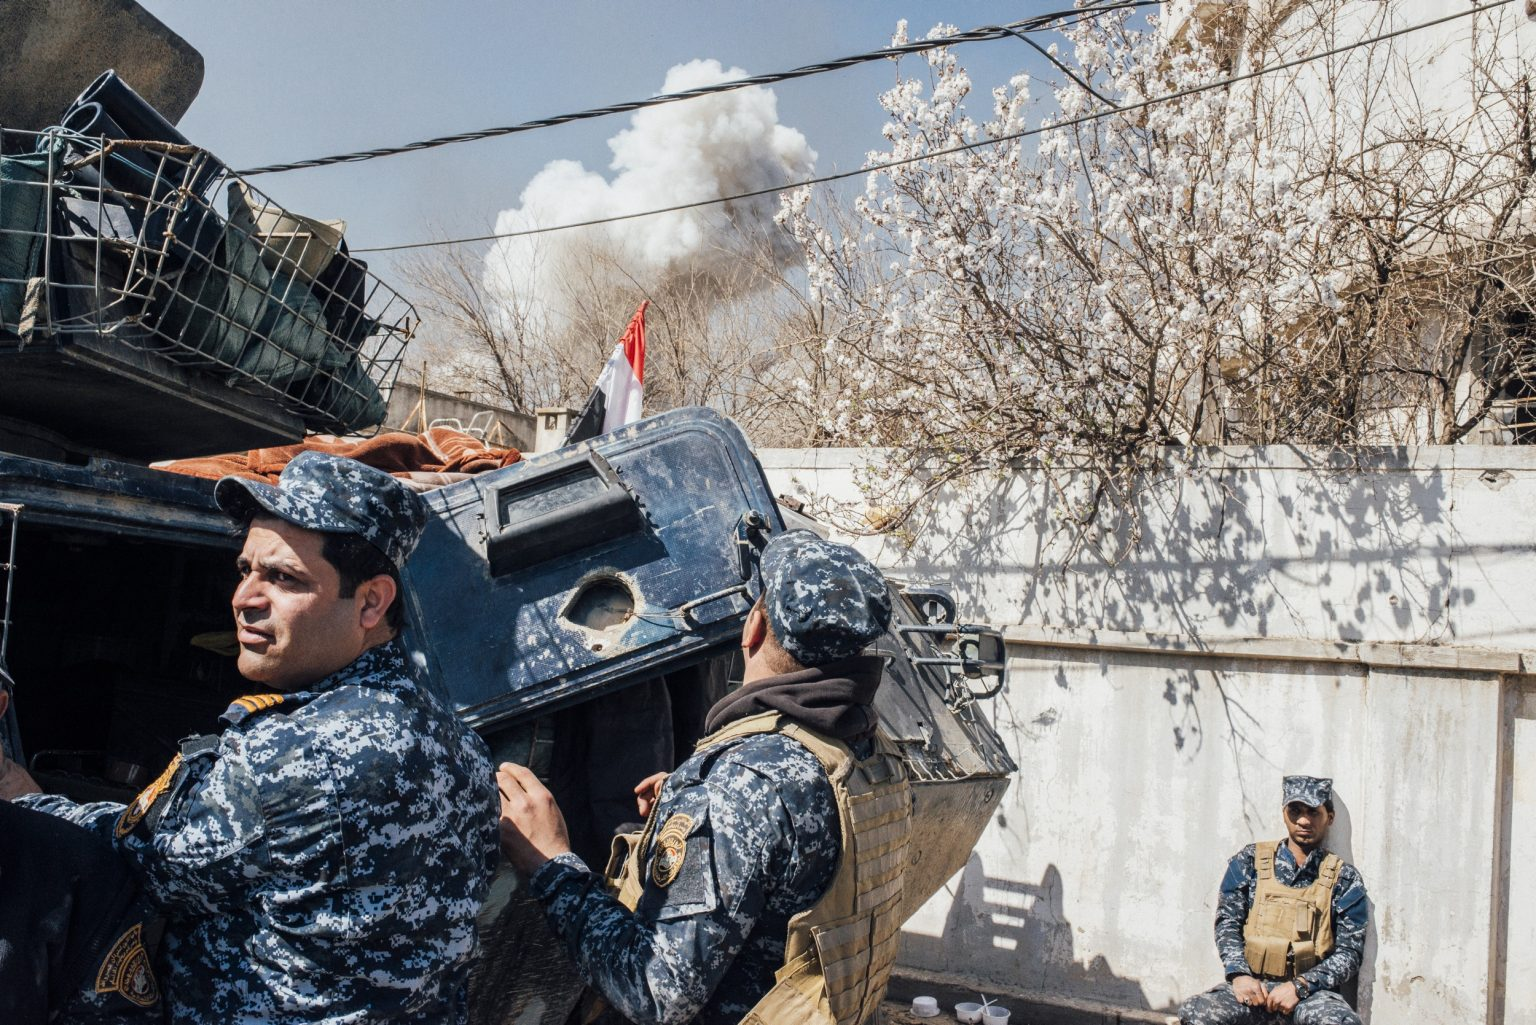 Members of the Federal Police take a shelter after a car bomb explosion, in Southwest Mosul, Iraq, 2017